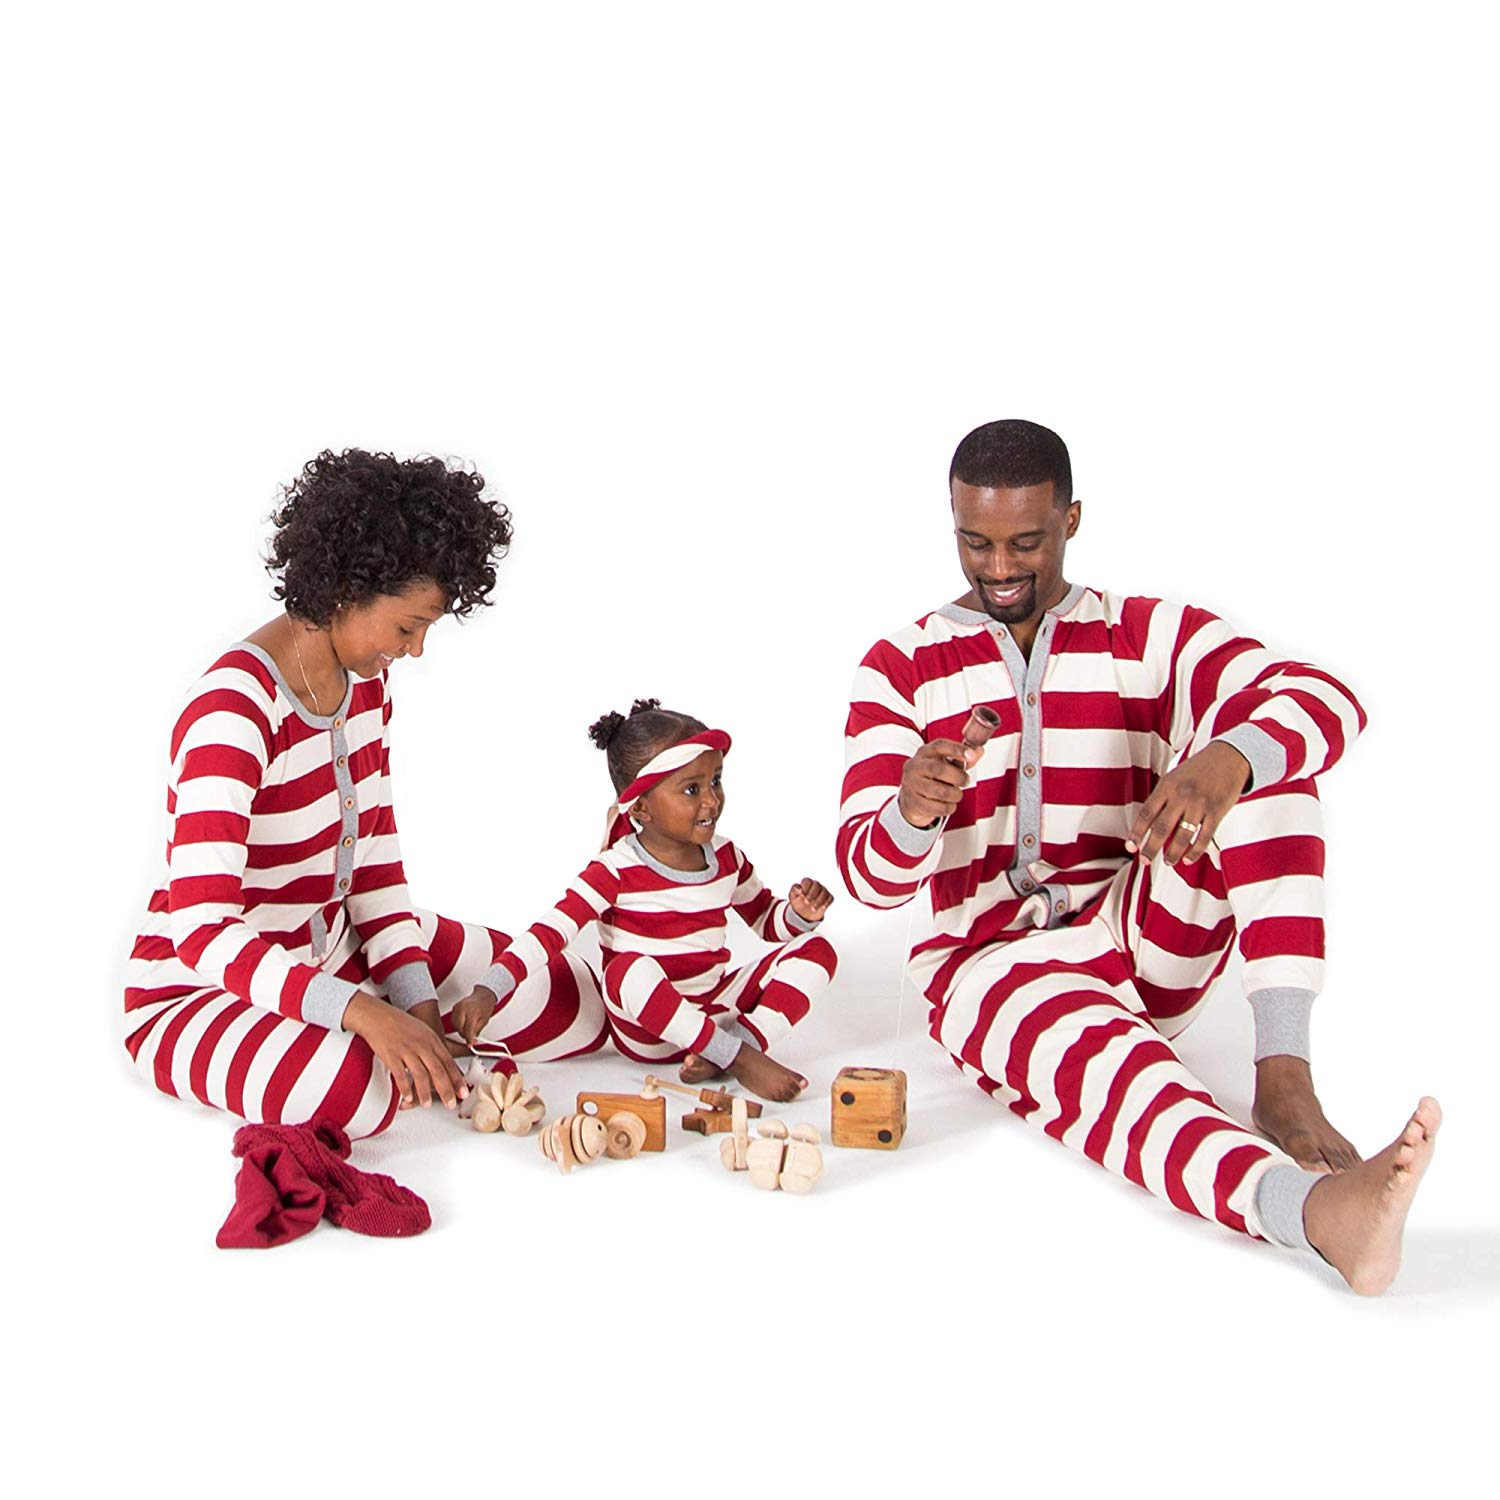 Burt's Bees Holiday Family Jammies in Cranberry Rugby Stripe